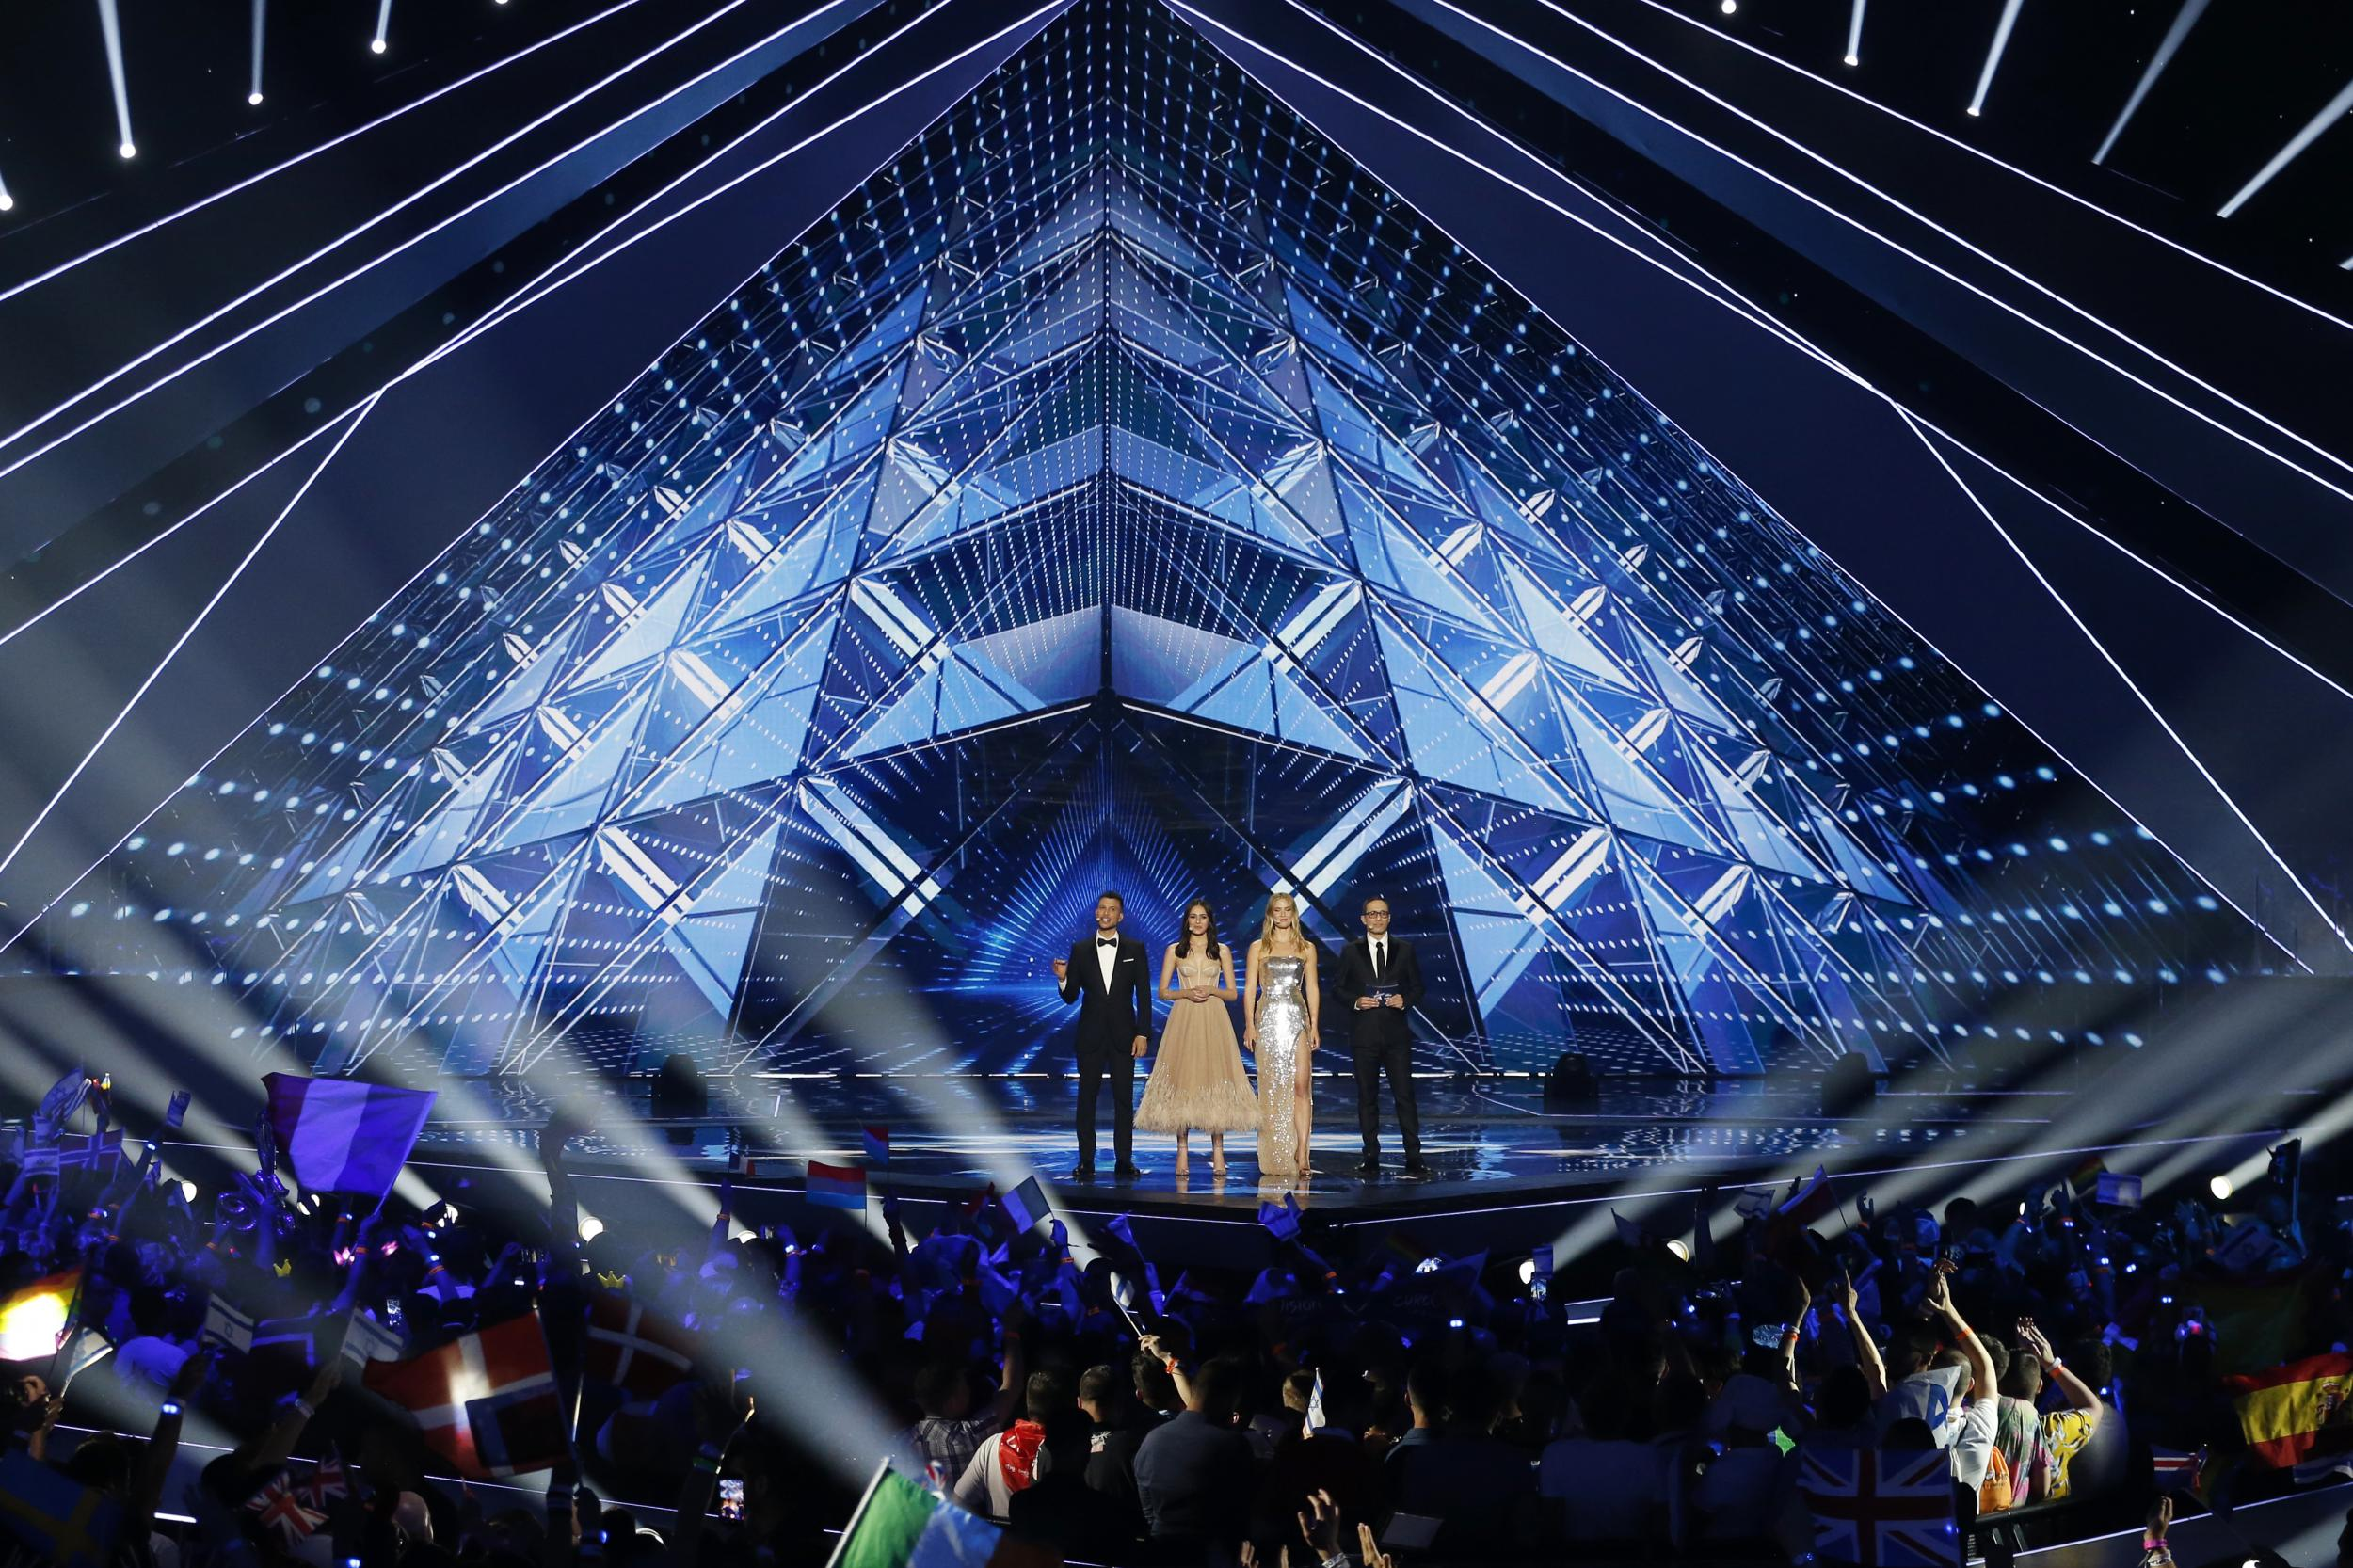 Eurovision 2019 review: Incredible show in Tel Aviv feels like a watershed moment